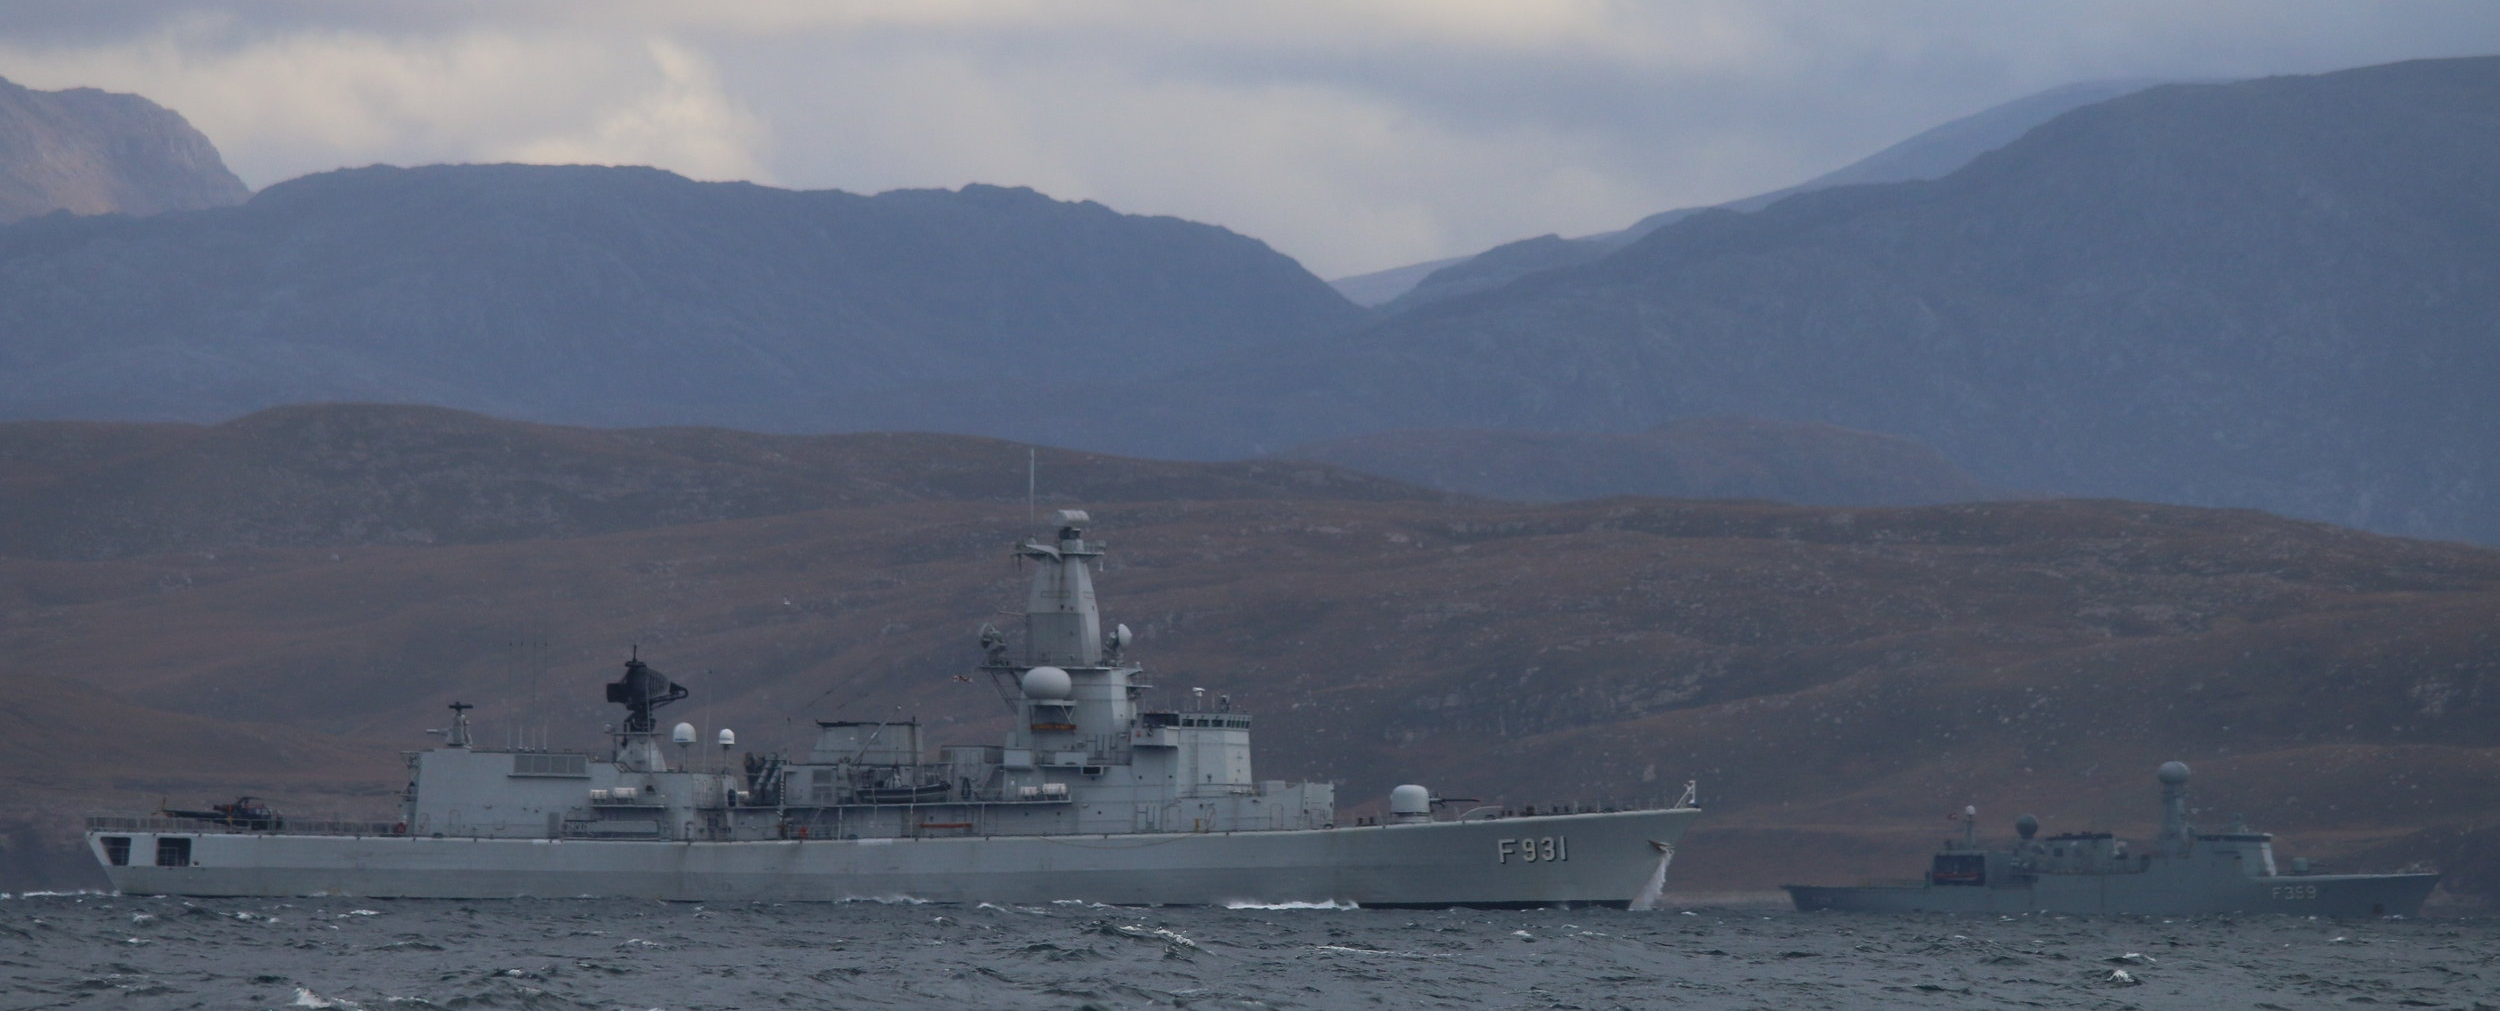 Military vessels engage in training exercises during Joint Warrior operations in the Hebrides